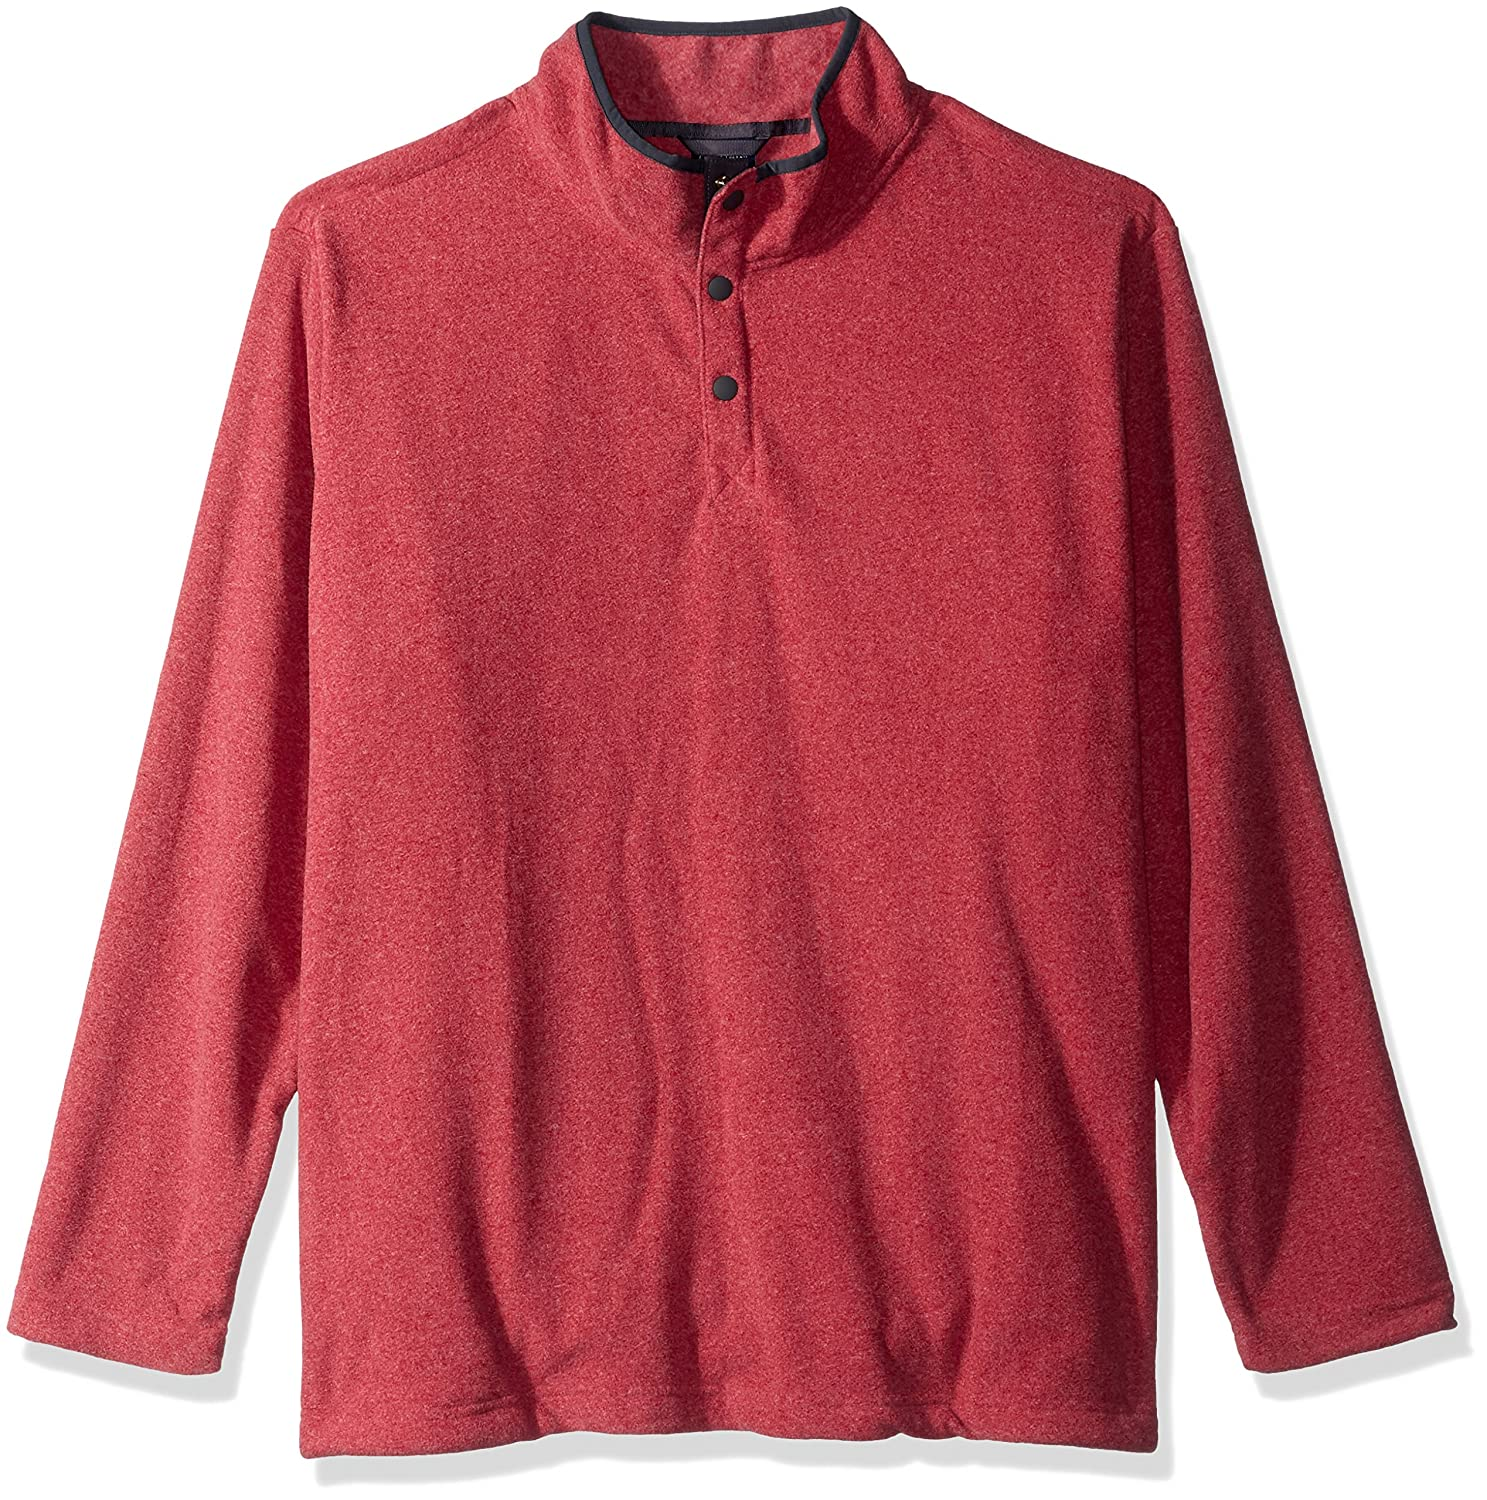 Charles River Apparel Men's Bayview Pullover Charles River Apparel Men' s Tops 9525